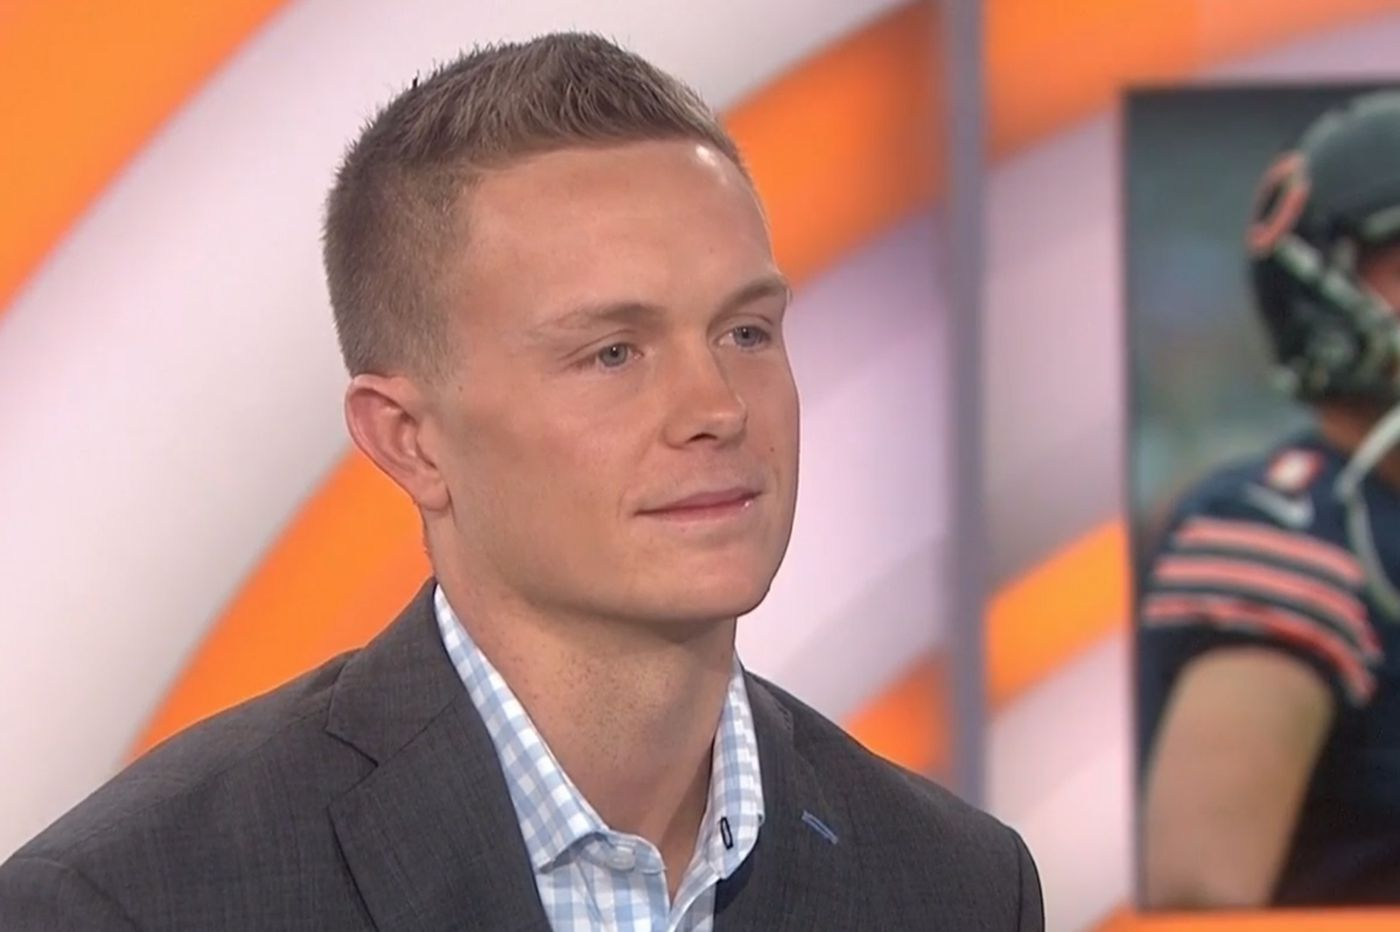 Cody Parkey talks 'double doink' on 'Today' show: 'I haven't been on social media'